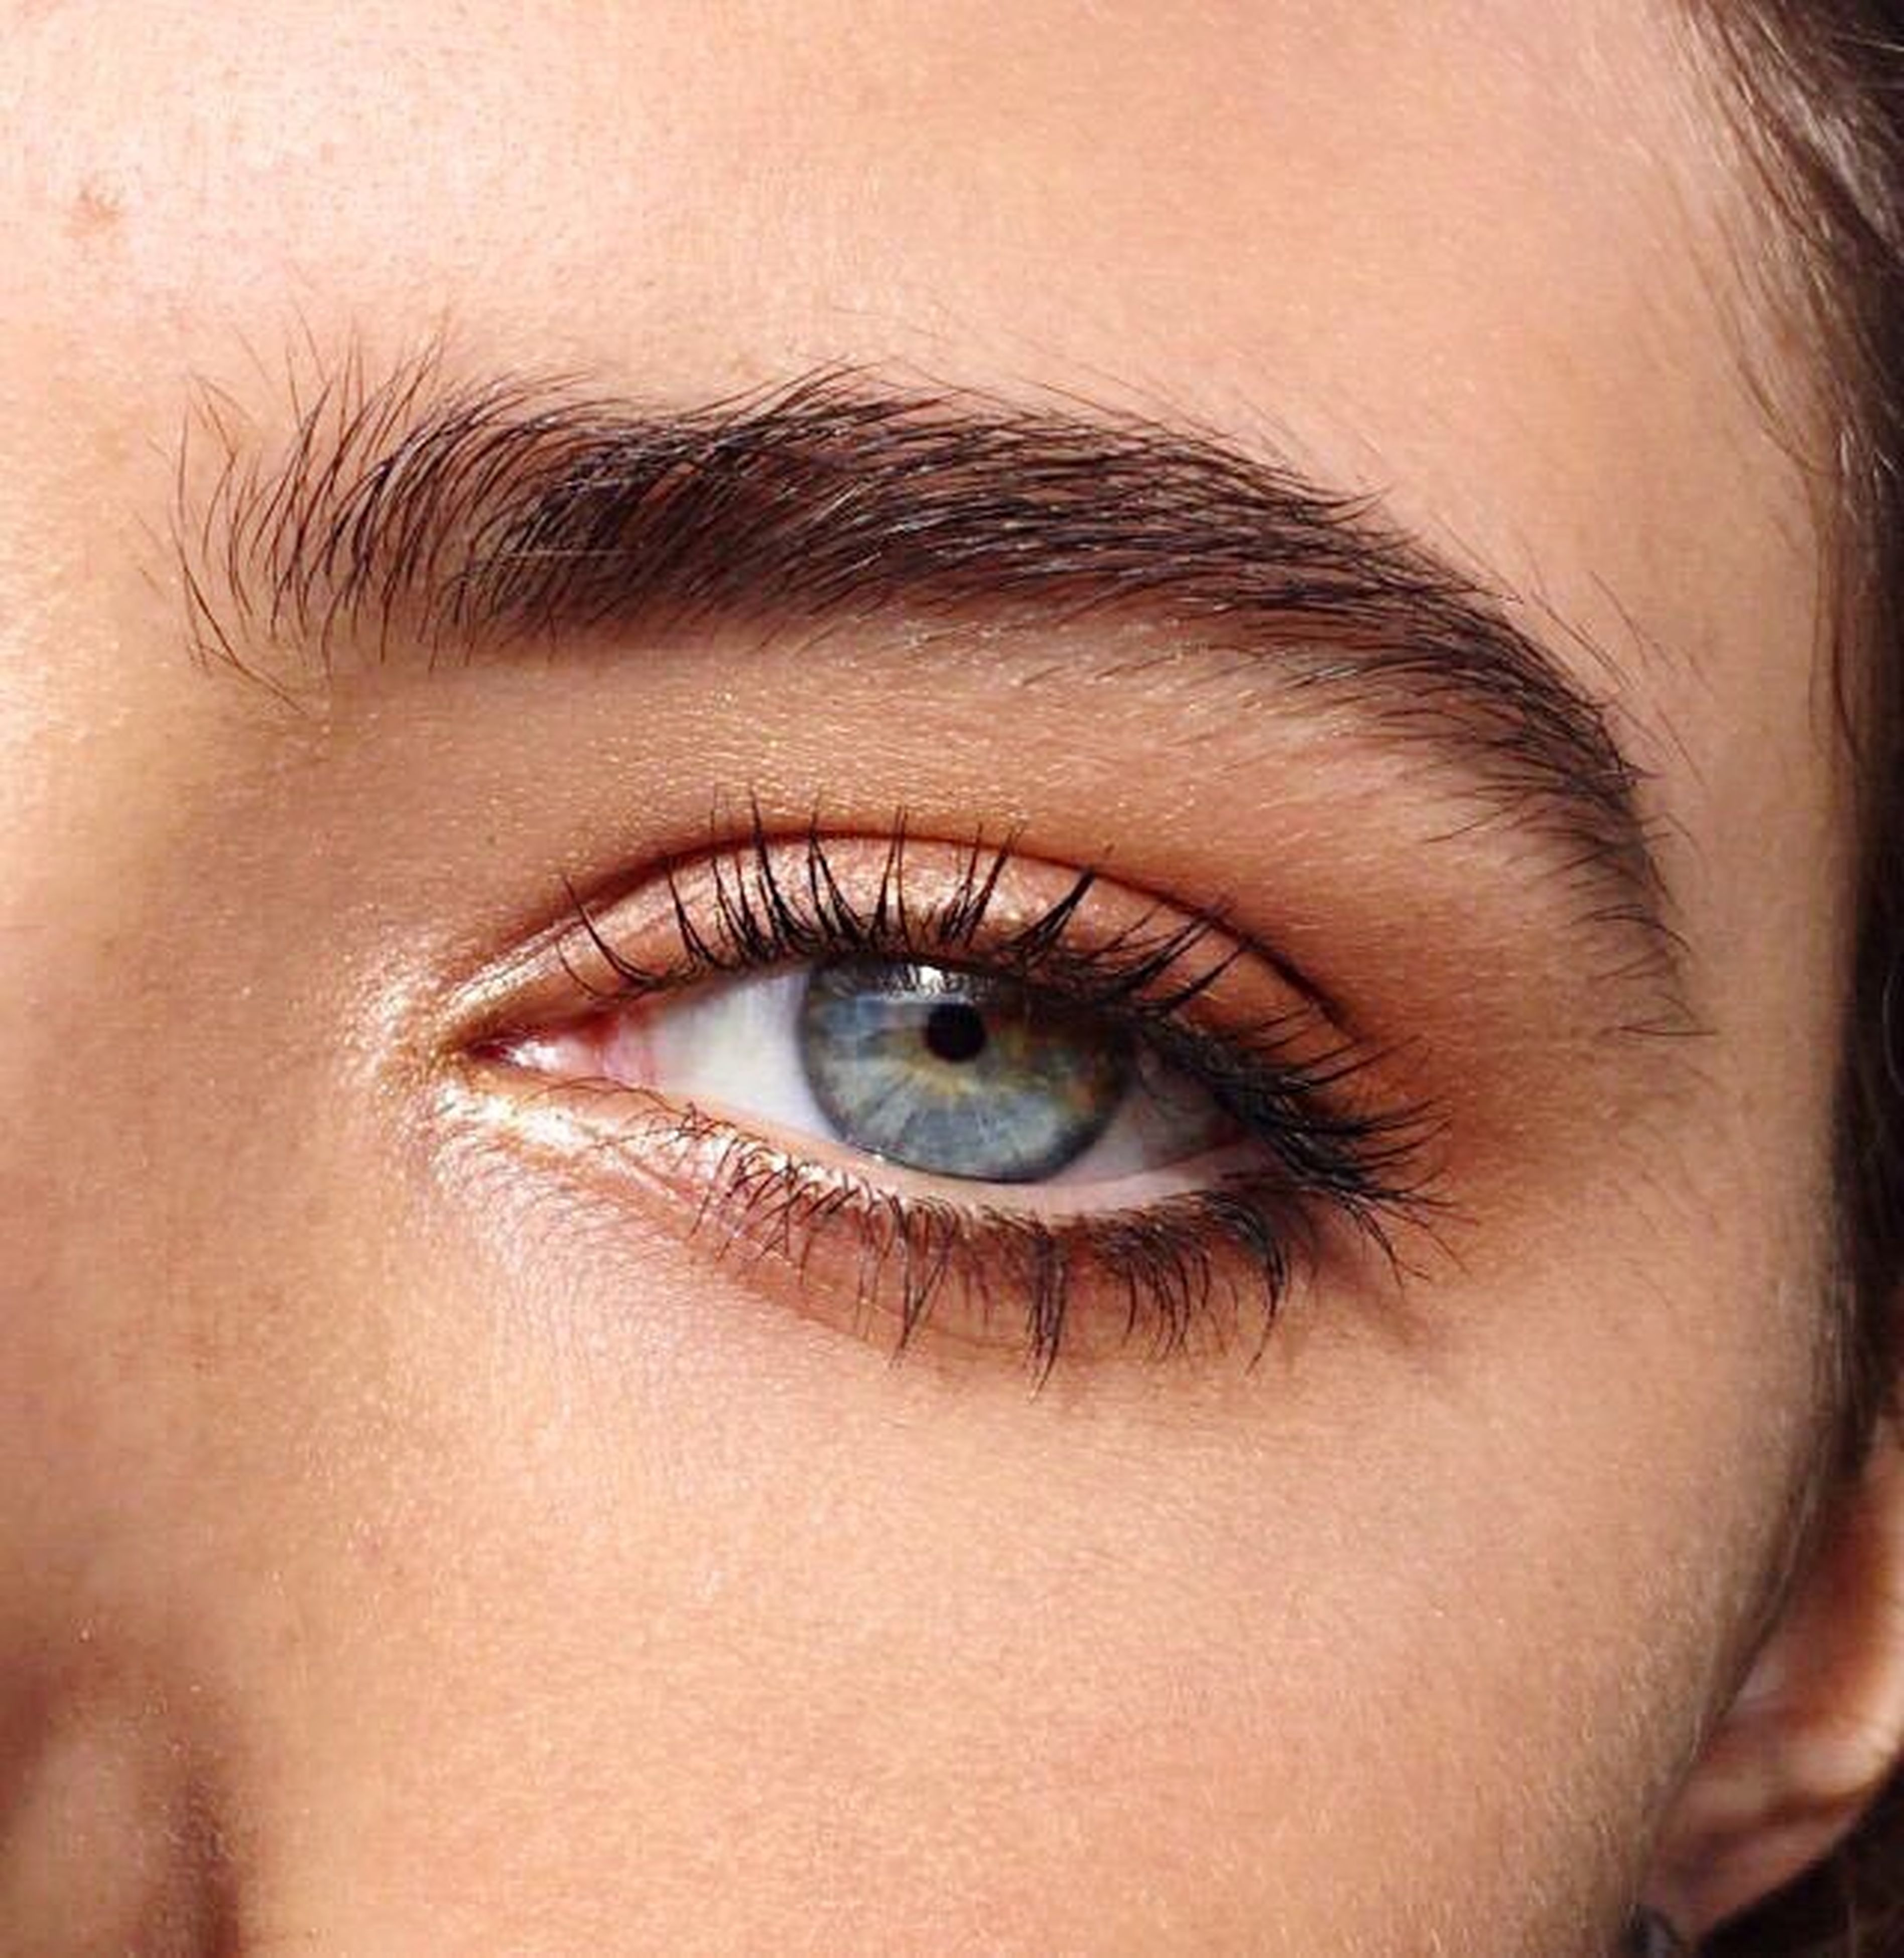 close-up, human eye, eyelash, eyesight, person, looking at camera, human skin, focus on foreground, eyebrow, one woman only, eyeball